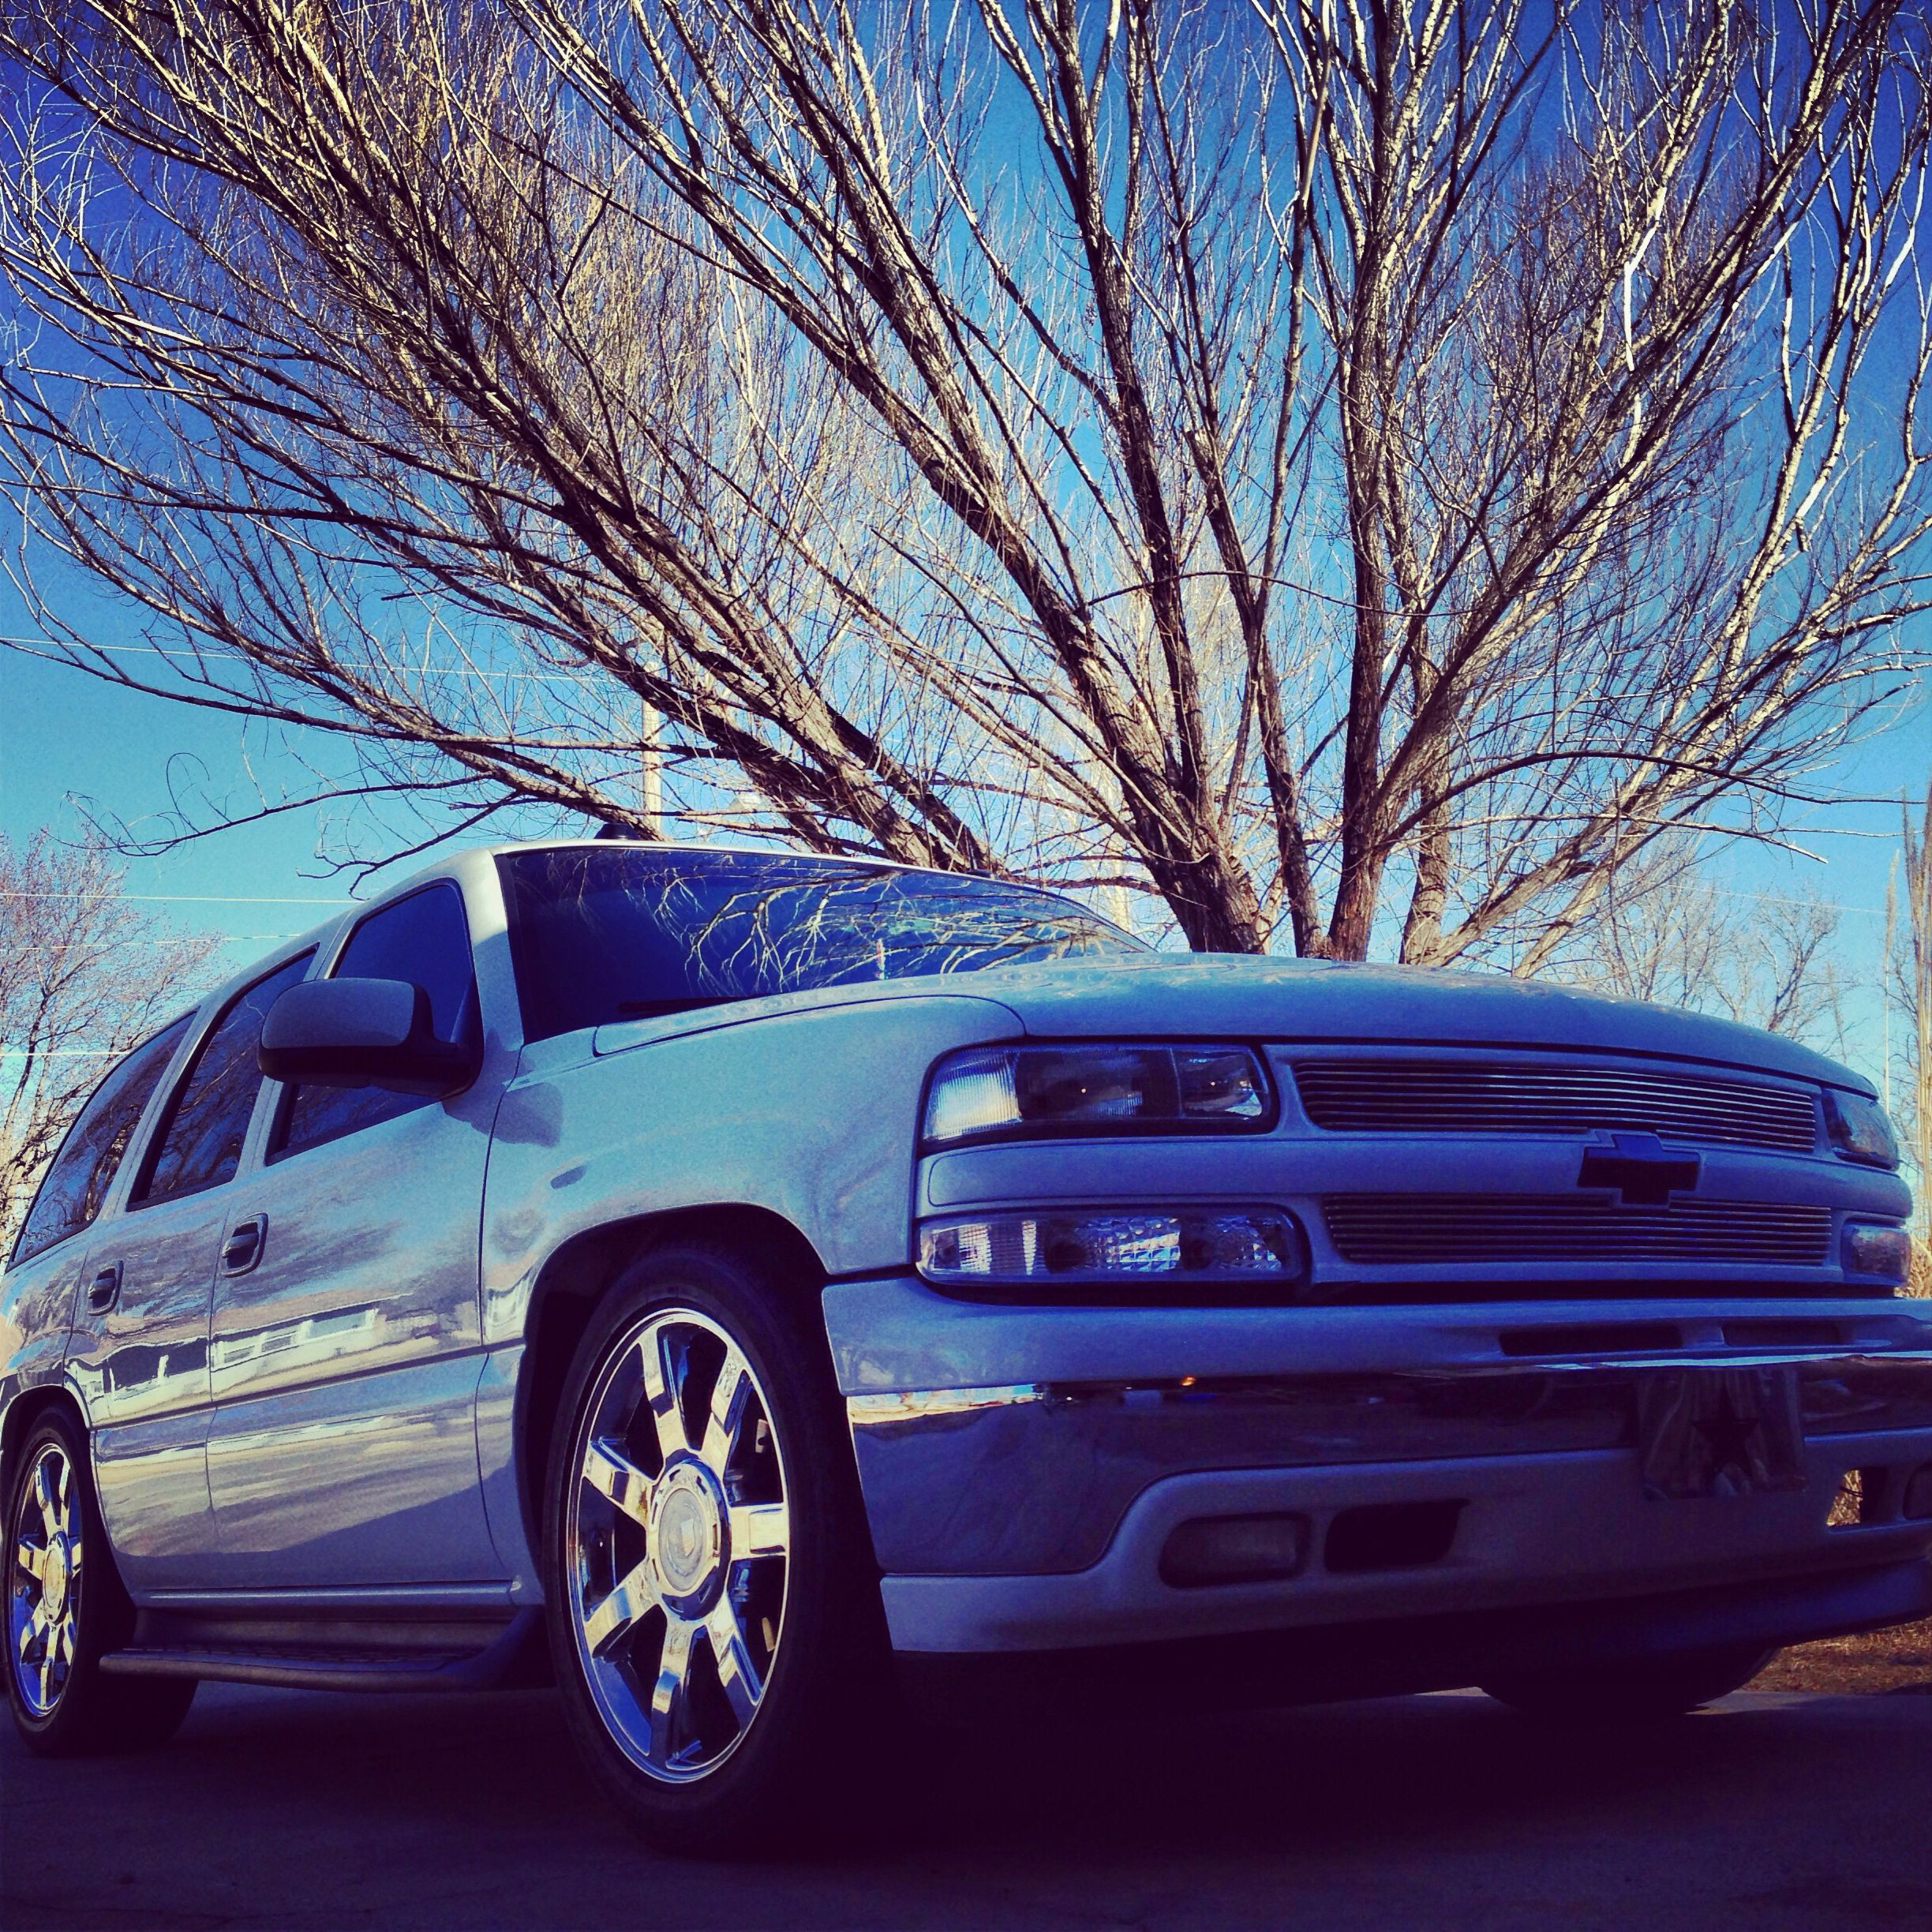 2004 Chevy Tahoe Lowered Chevy Tahoe Dropped Trucks Chevy Suburban